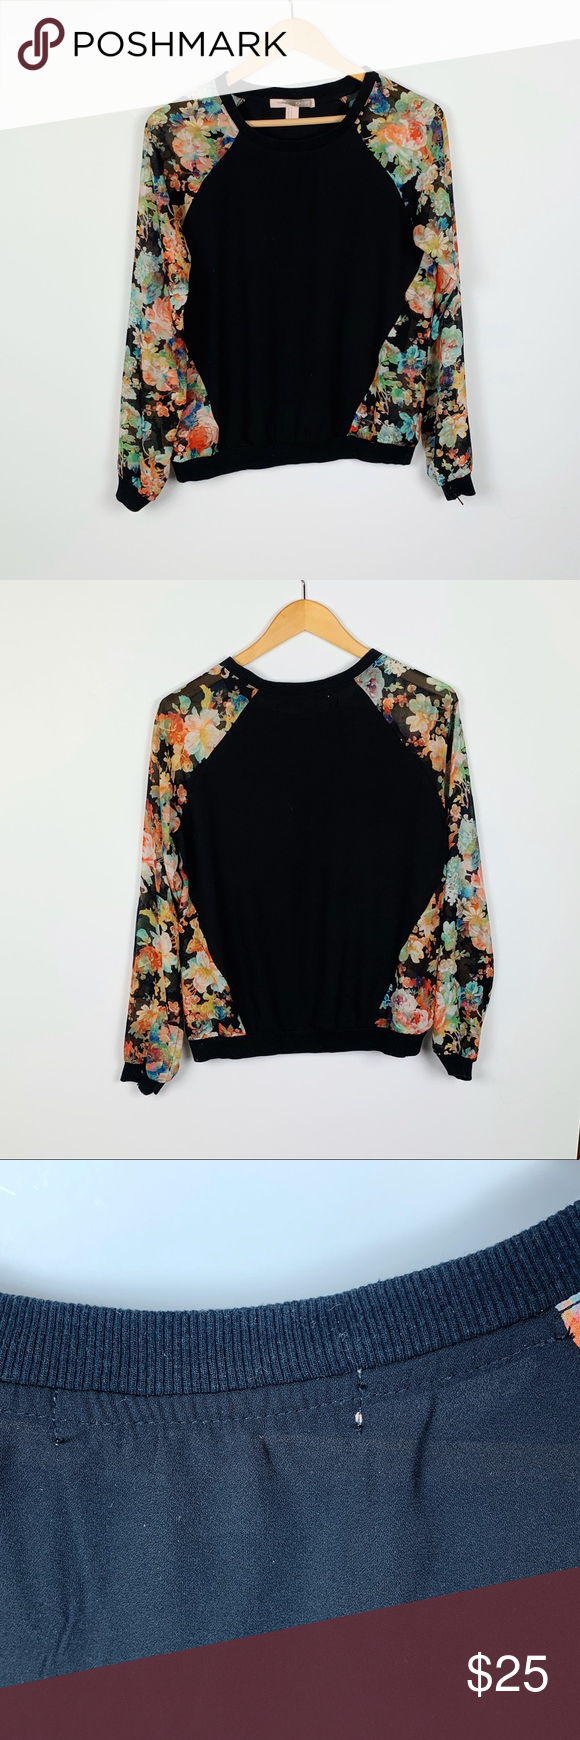 Forever 21 Black Floral Crewneck Size M With Images Clothes